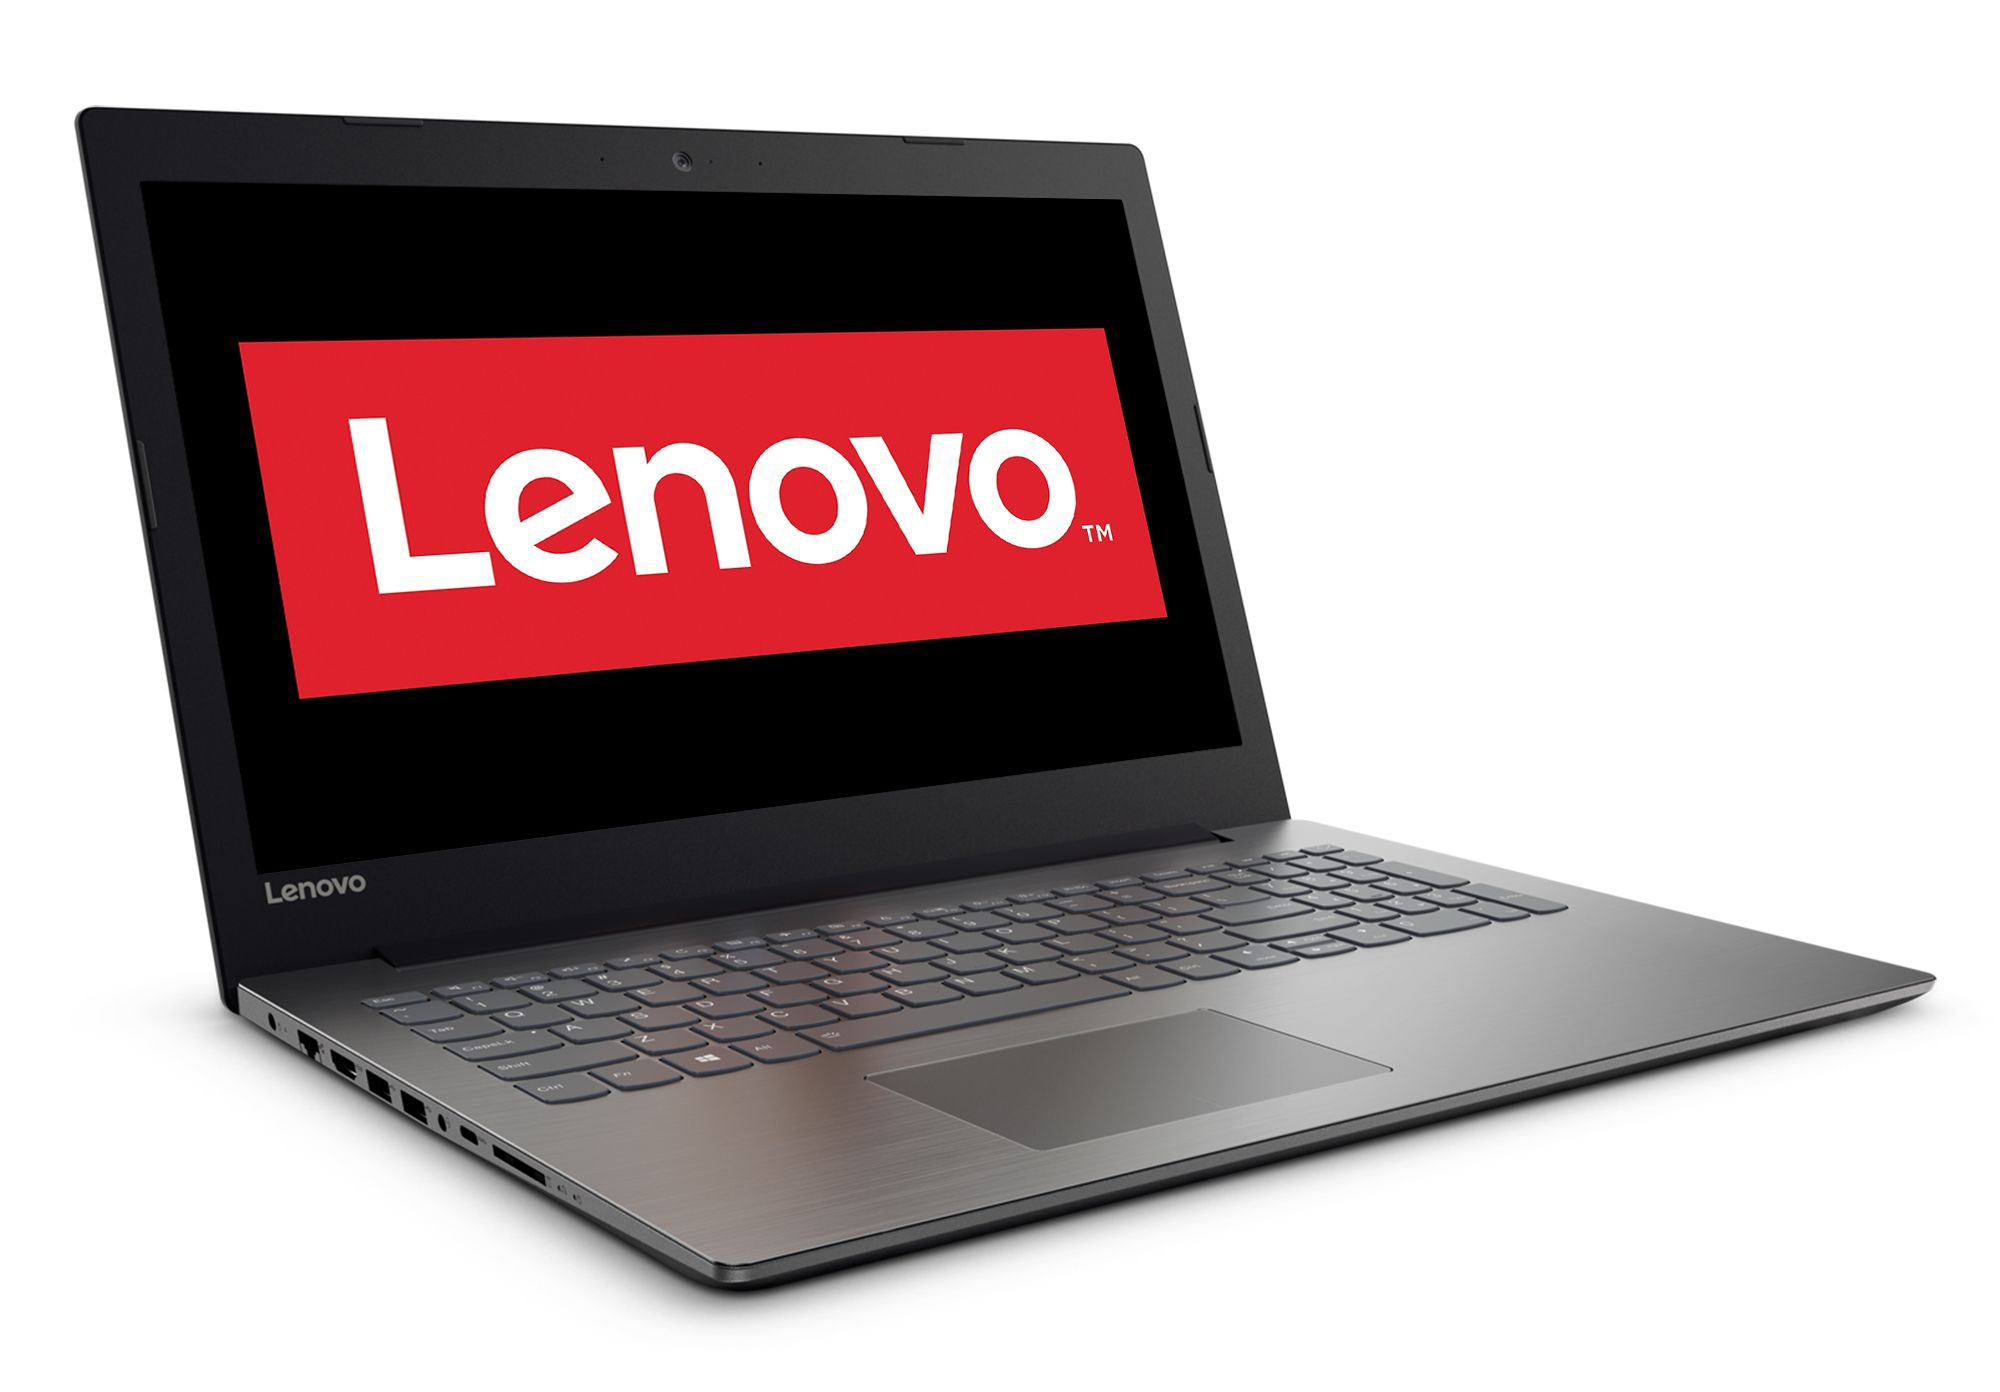 Laptop Lenovo IdeaPad 320-15IKBN 15.6 HD Intel Core i5-7200U 2.5 Ghz video integrat Intel HD Graphics RAM 4GB DDR4 2133MHz HDD 1TB 5400rpm DVD+-RW